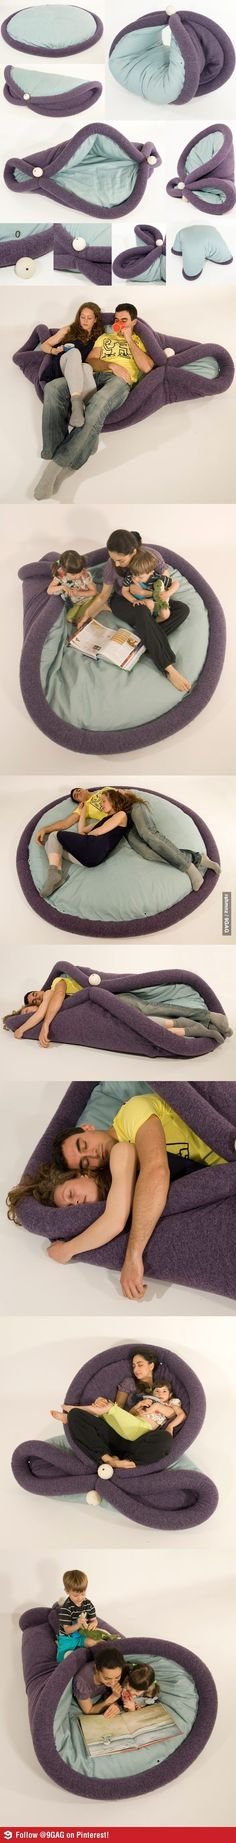 MUST HAVE: Original Carpet Pillow